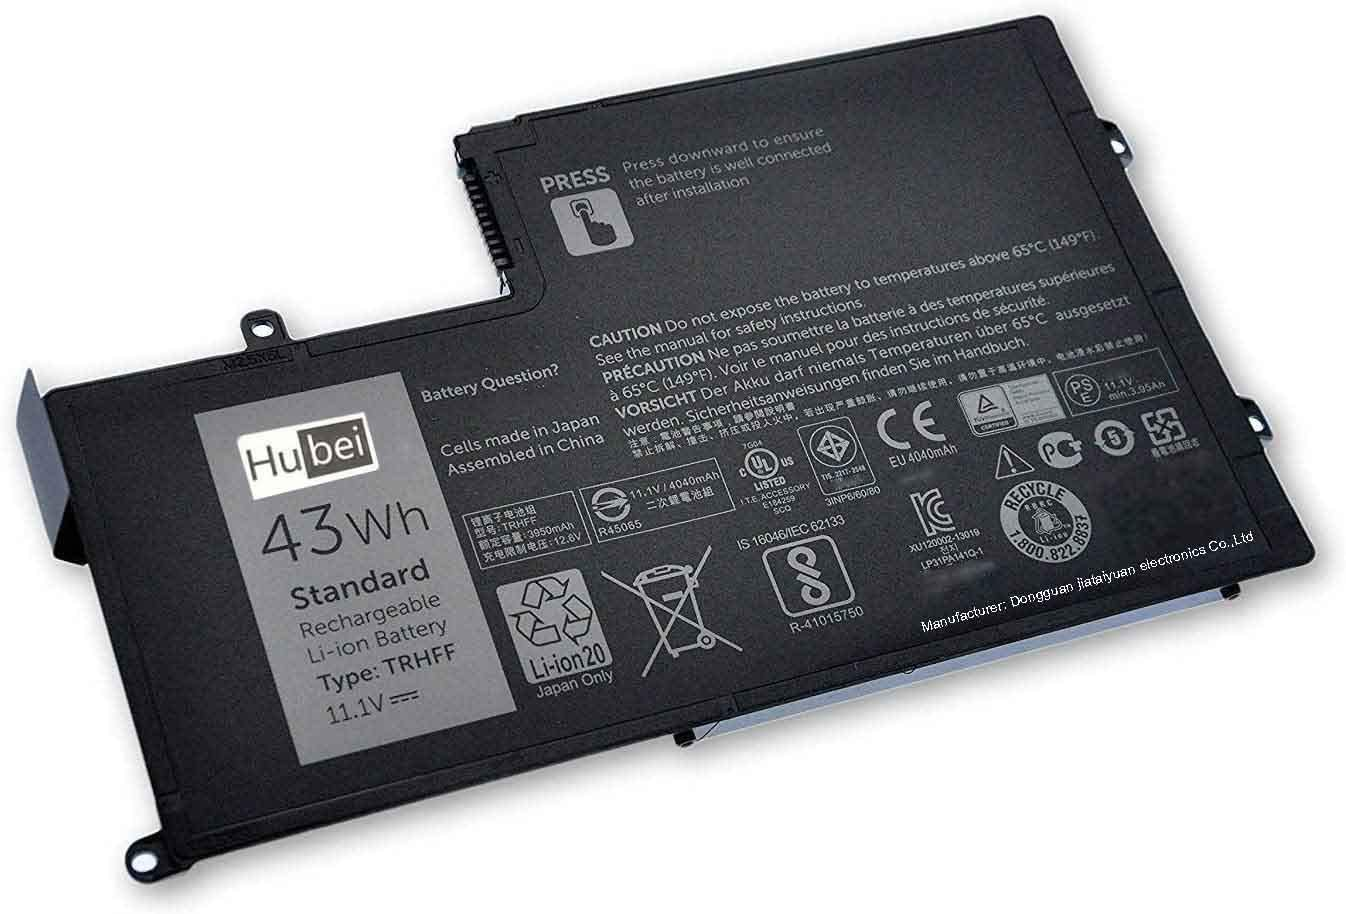 TRHFF 1V2F6 7P3X9 1WWHW R0JM6 J0HDW Replacement Laptop Battery for DellLatitude 3450 3550 Inspiron 15 5542 5543 5545 5547 5548 5557 14 5442 5443 5445 5447 (11.1V 43WH)